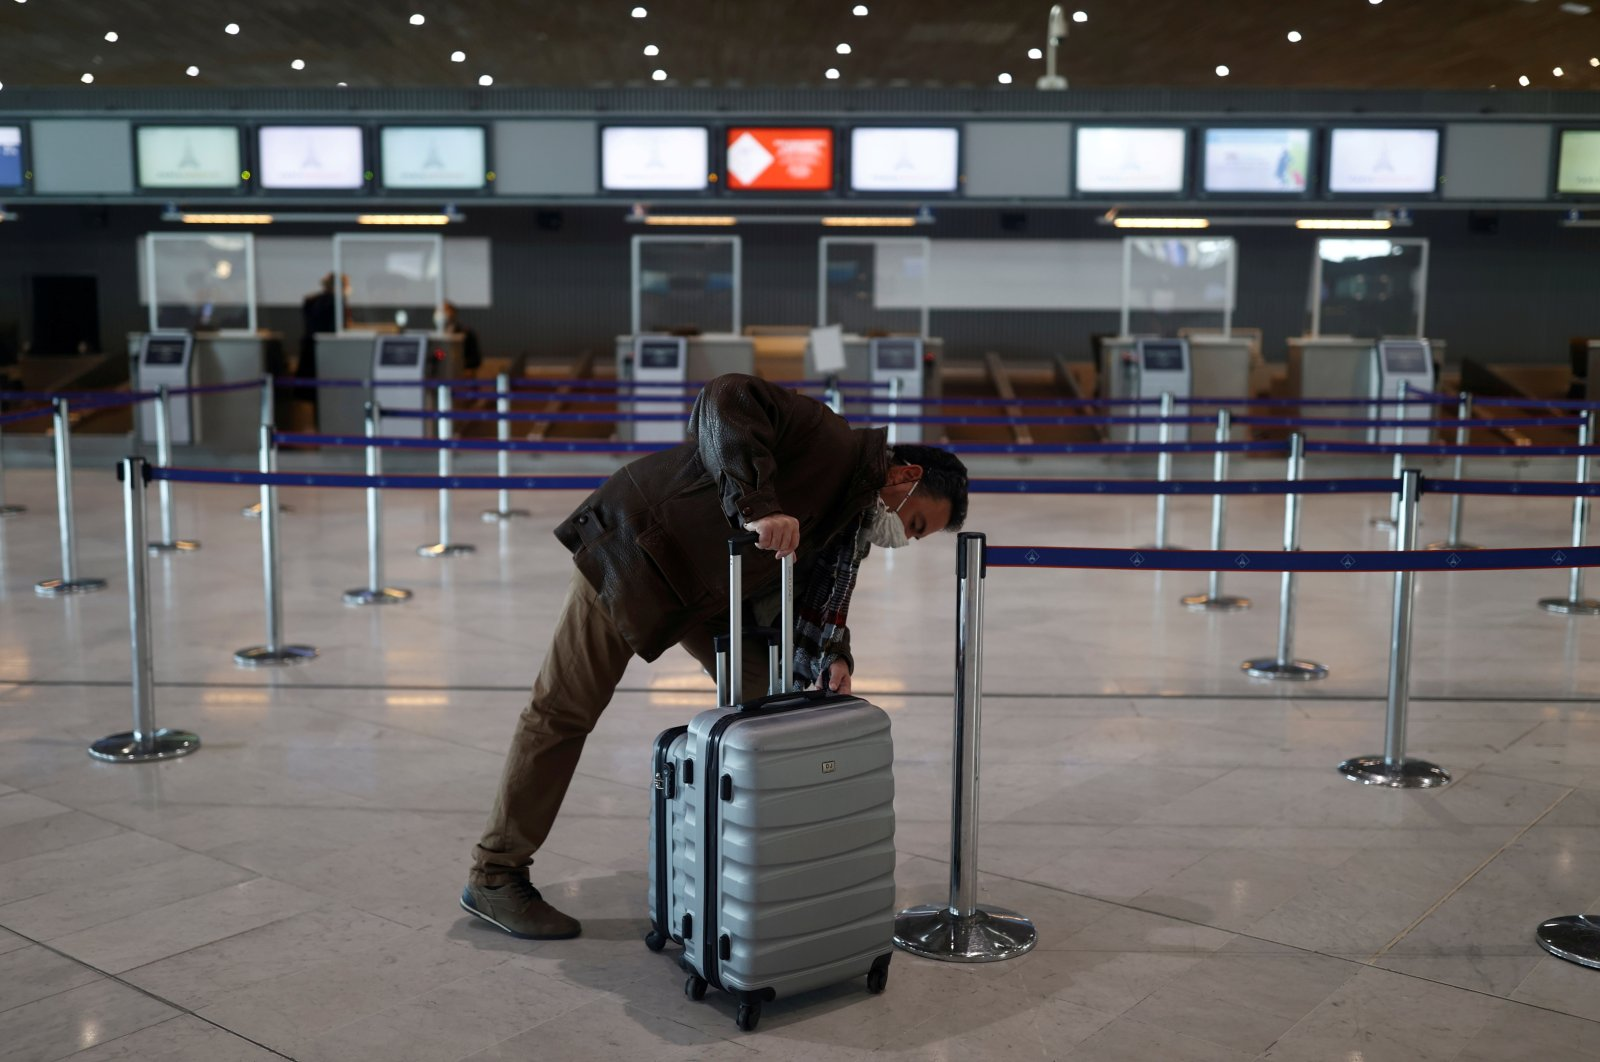 A passenger waits for check-in in the departures area of Terminal 2E at Charles-de-Gaulle airport amid the coronavirus outbreak, in Roissy, near Paris, France, April 2, 2021. (Reuters Photo)